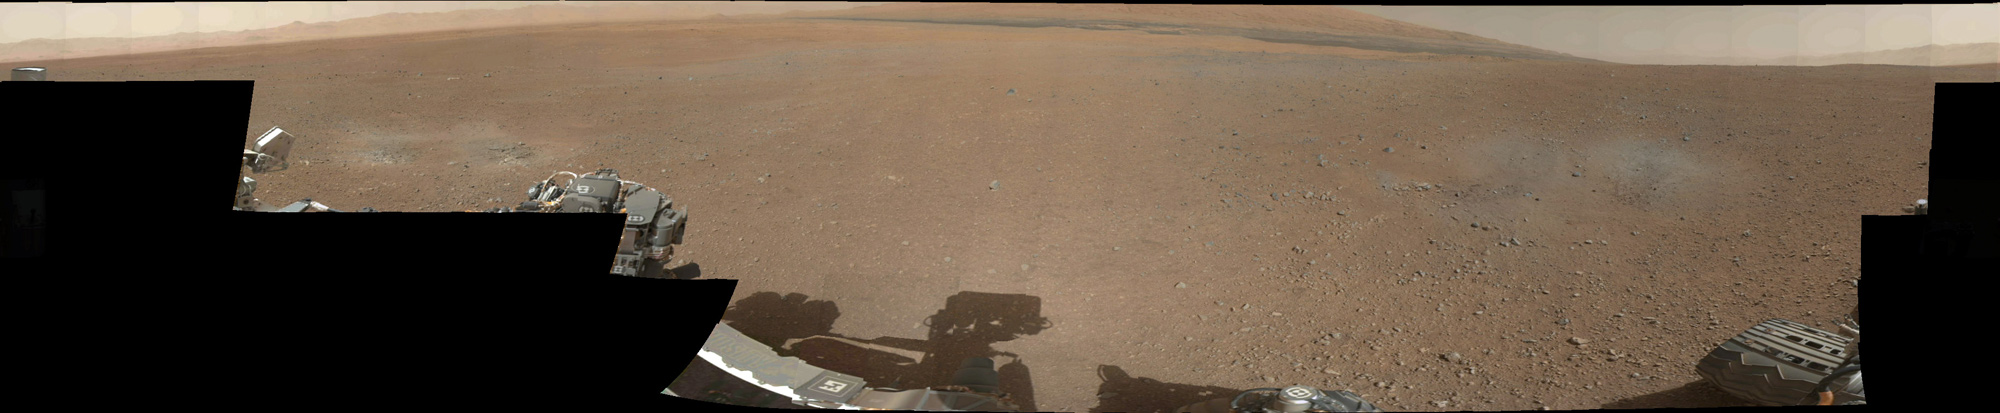 Weather On Mars Surprisingly Warm, Curiosity Rover Finds